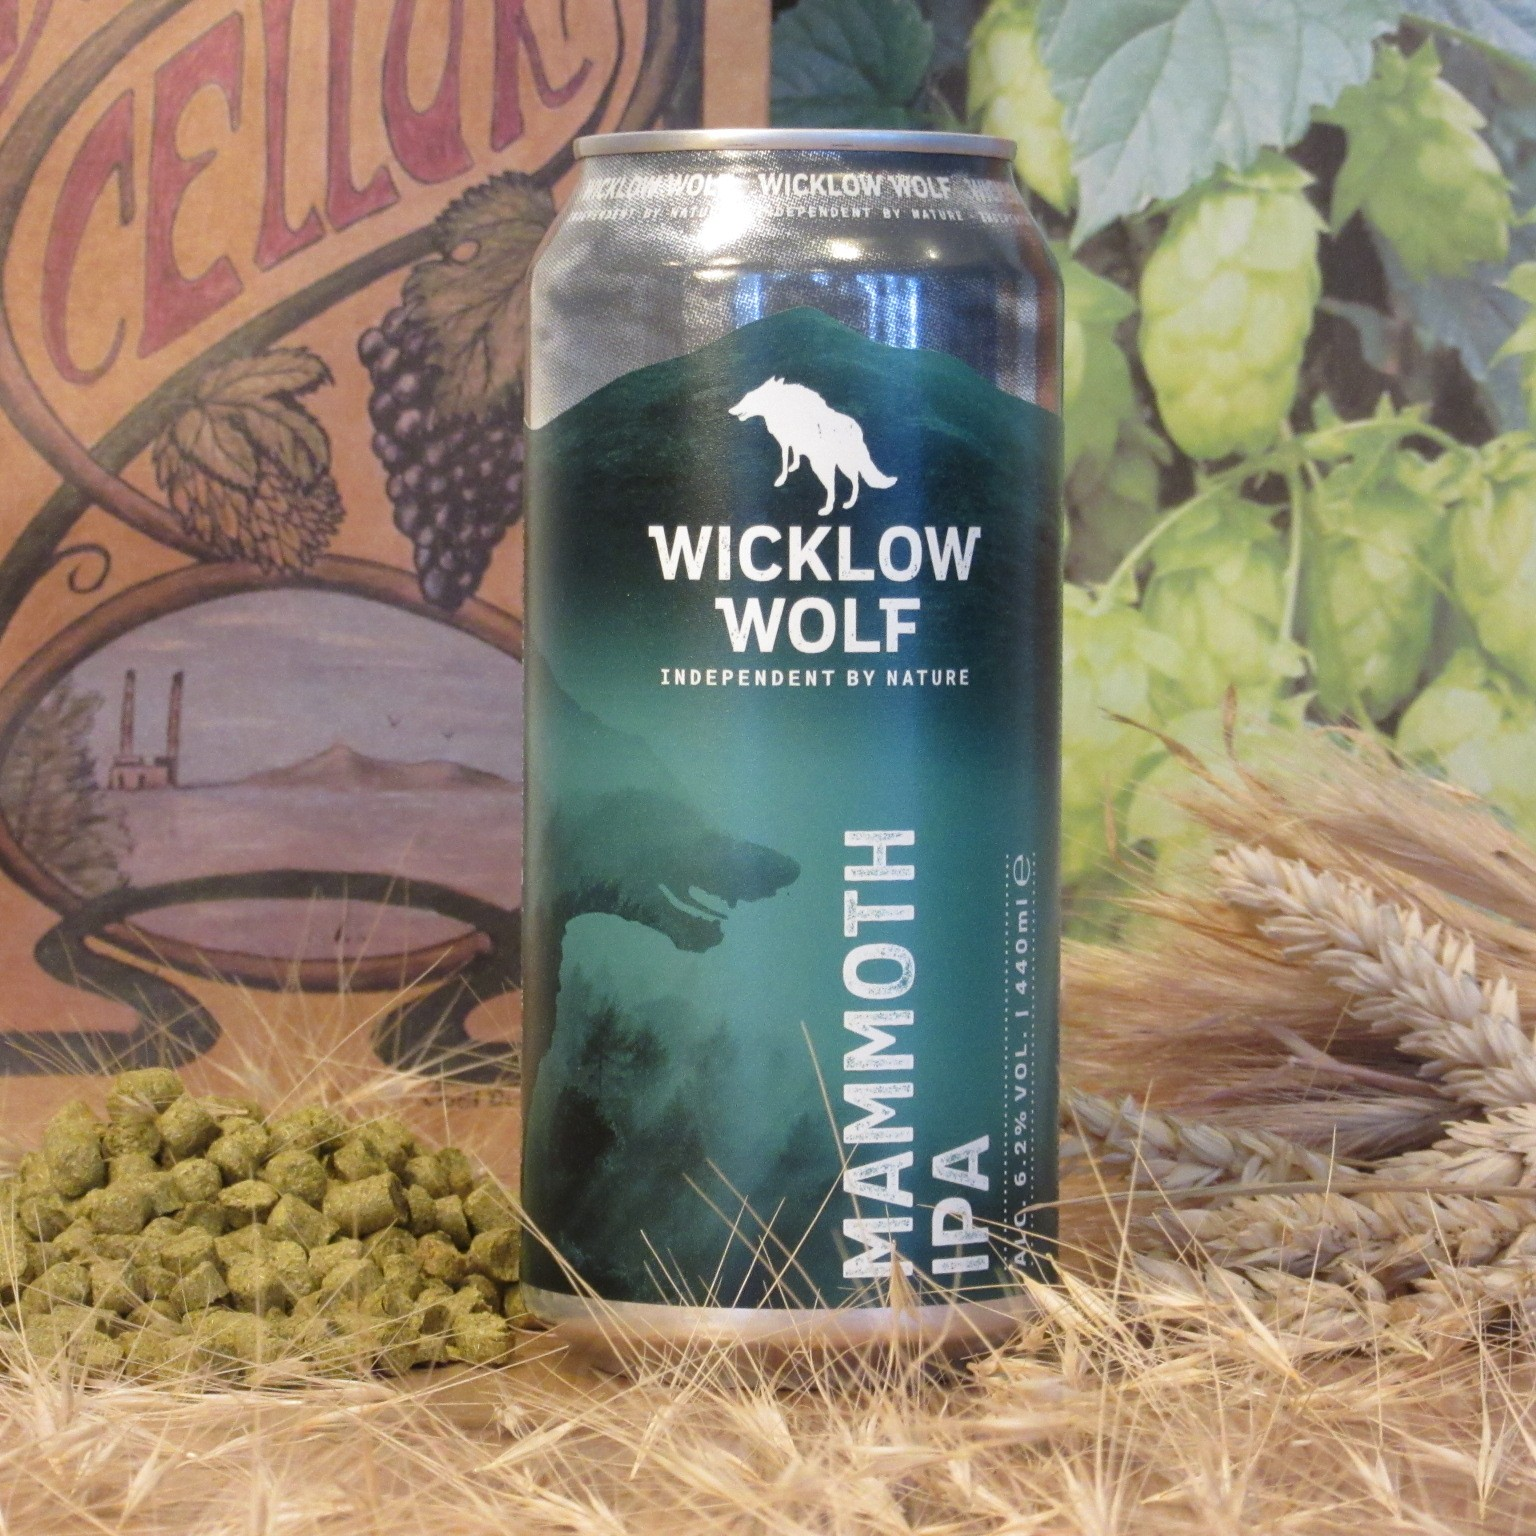 Wicklow Wolf Mammoth IPA